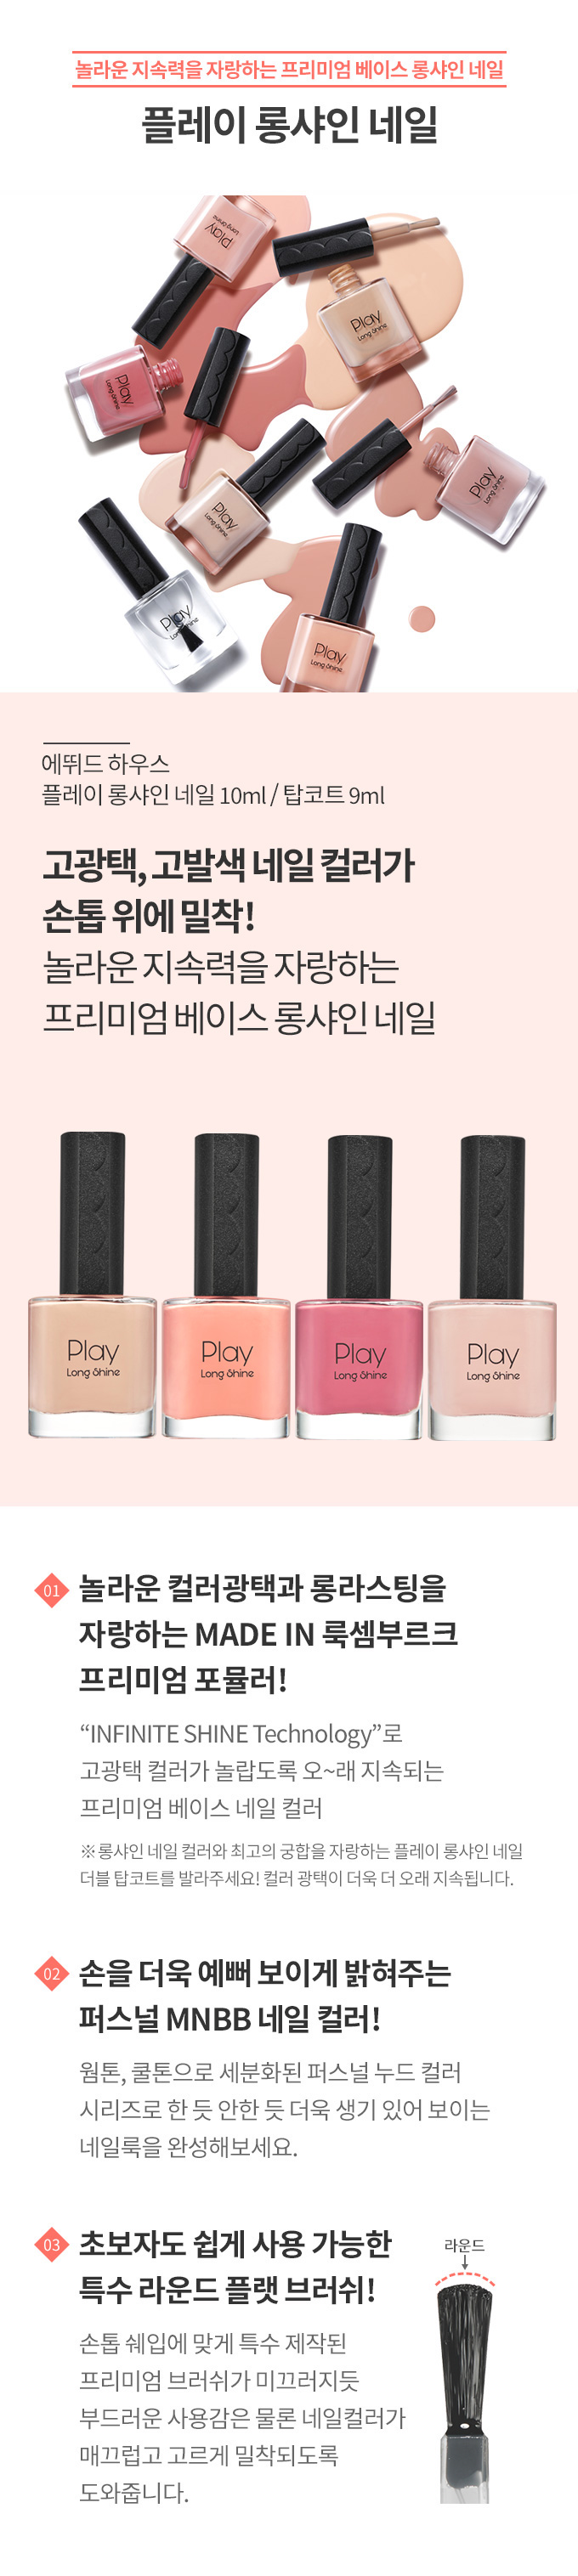 Etude House,Makeup,Nail,Nail Polish,NewArrival-201711,,